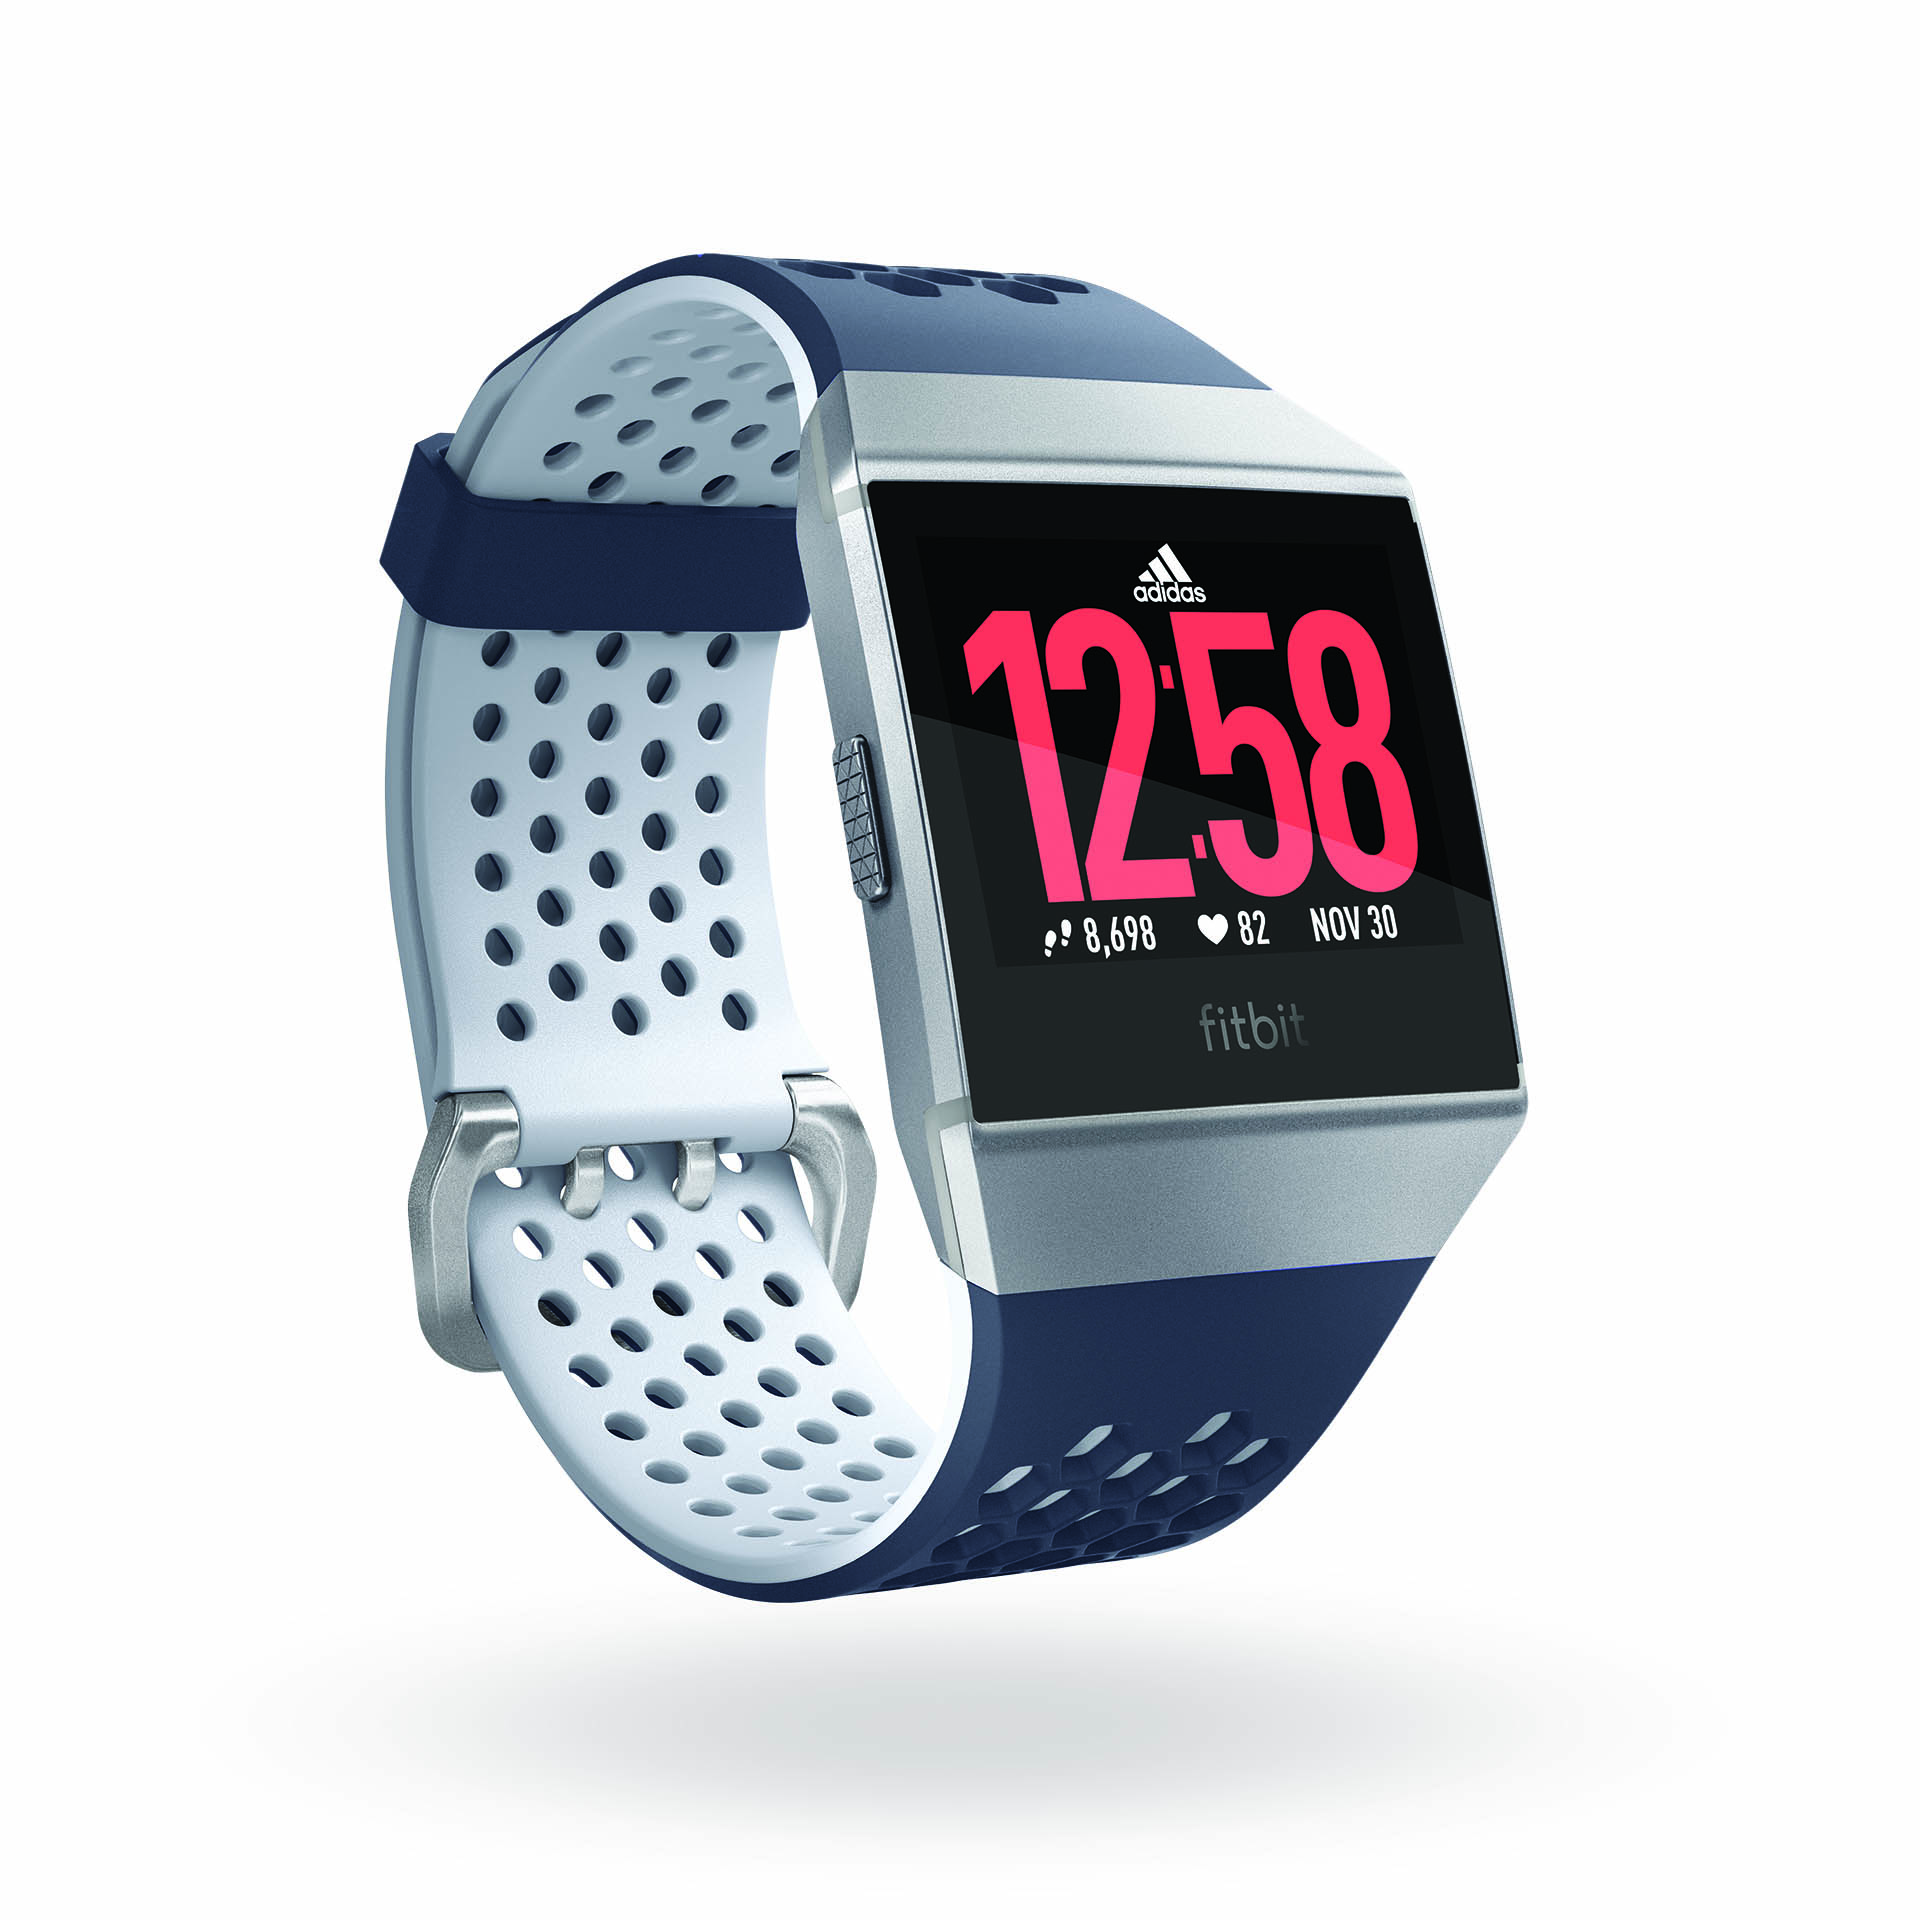 3212b96192b The Ionic Adidas Edition is Fitbit's answer to the Apple Watch Nike+ ...